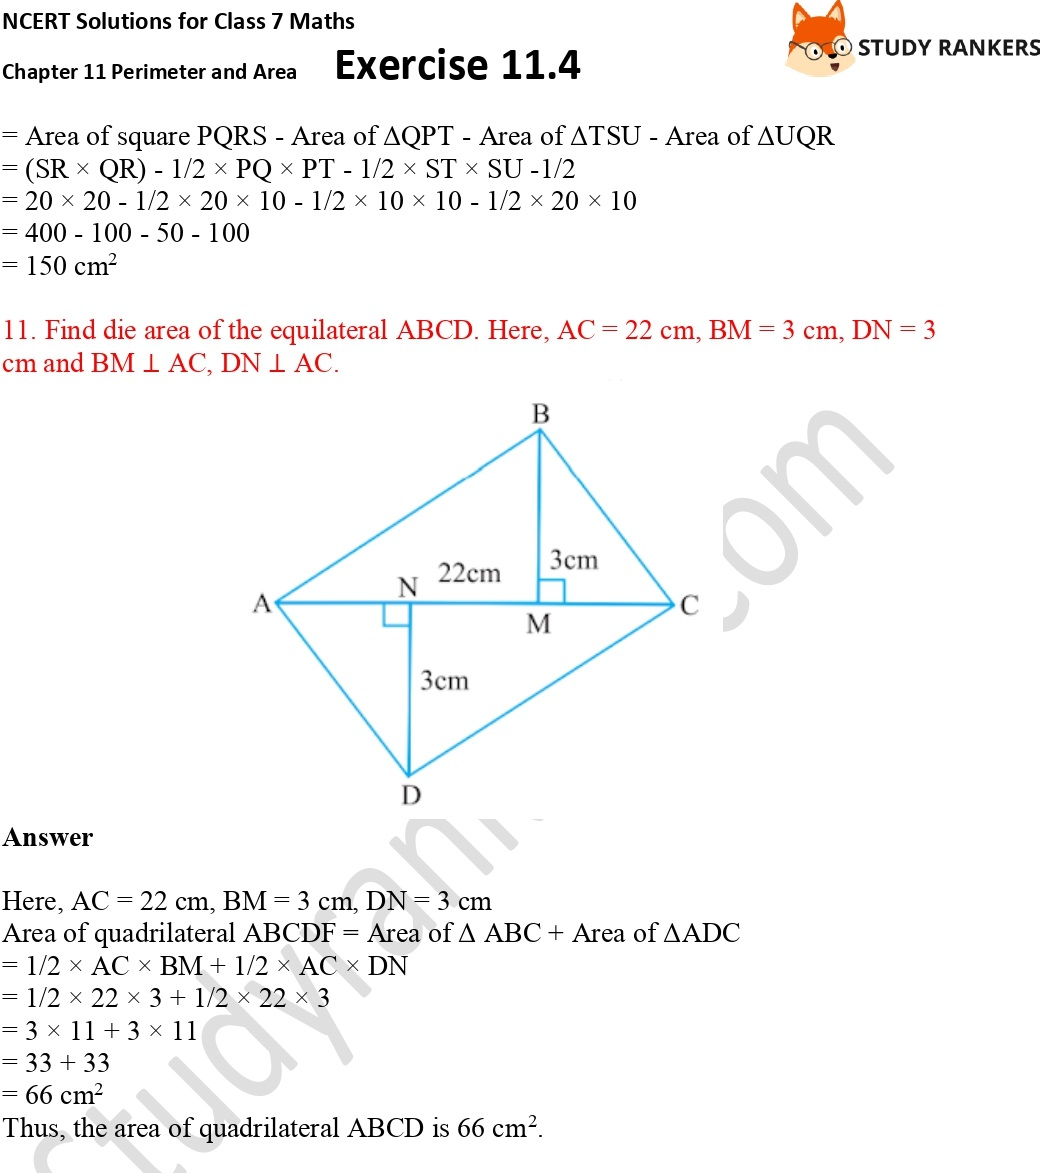 NCERT Solutions for Class 7 Maths Ch 11 Perimeter and Area Exercise 11.4 Part 8